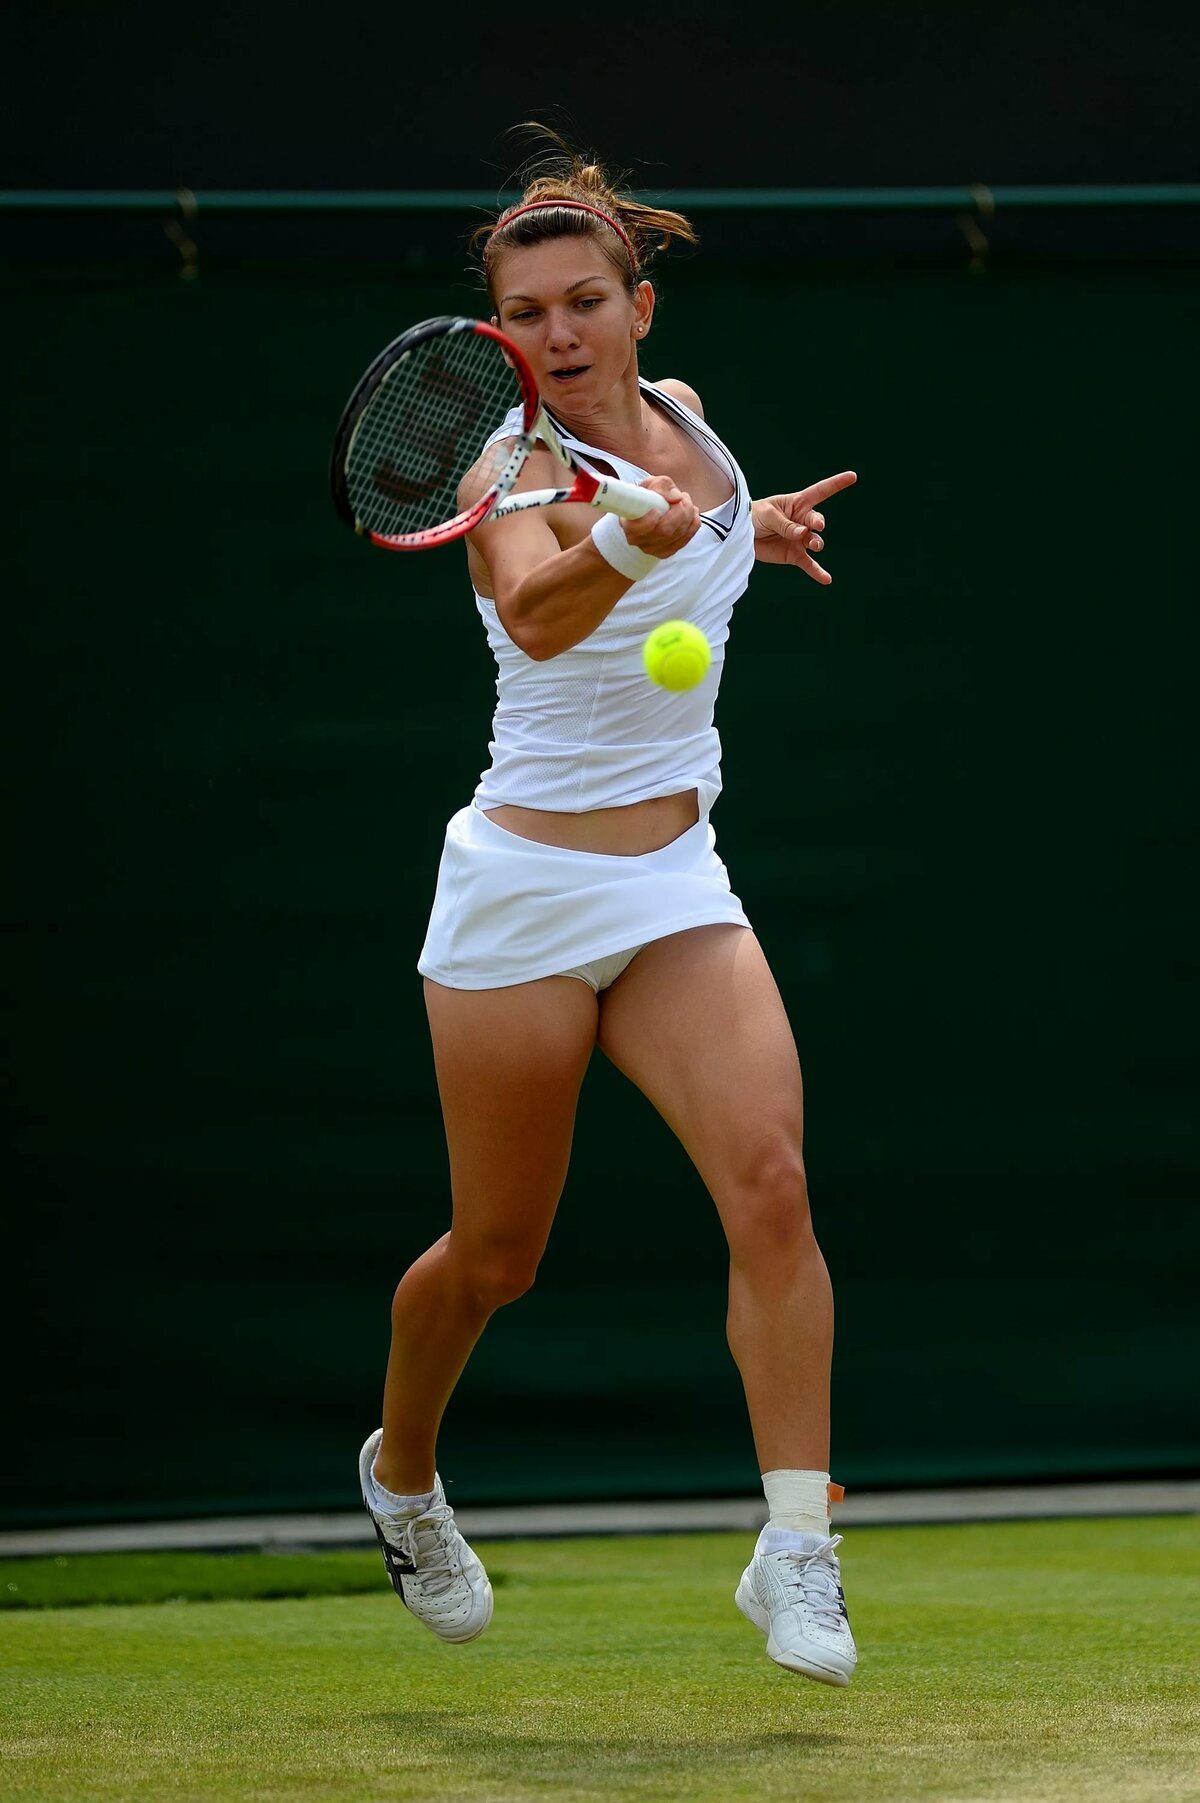 Nude Female Tennis Players